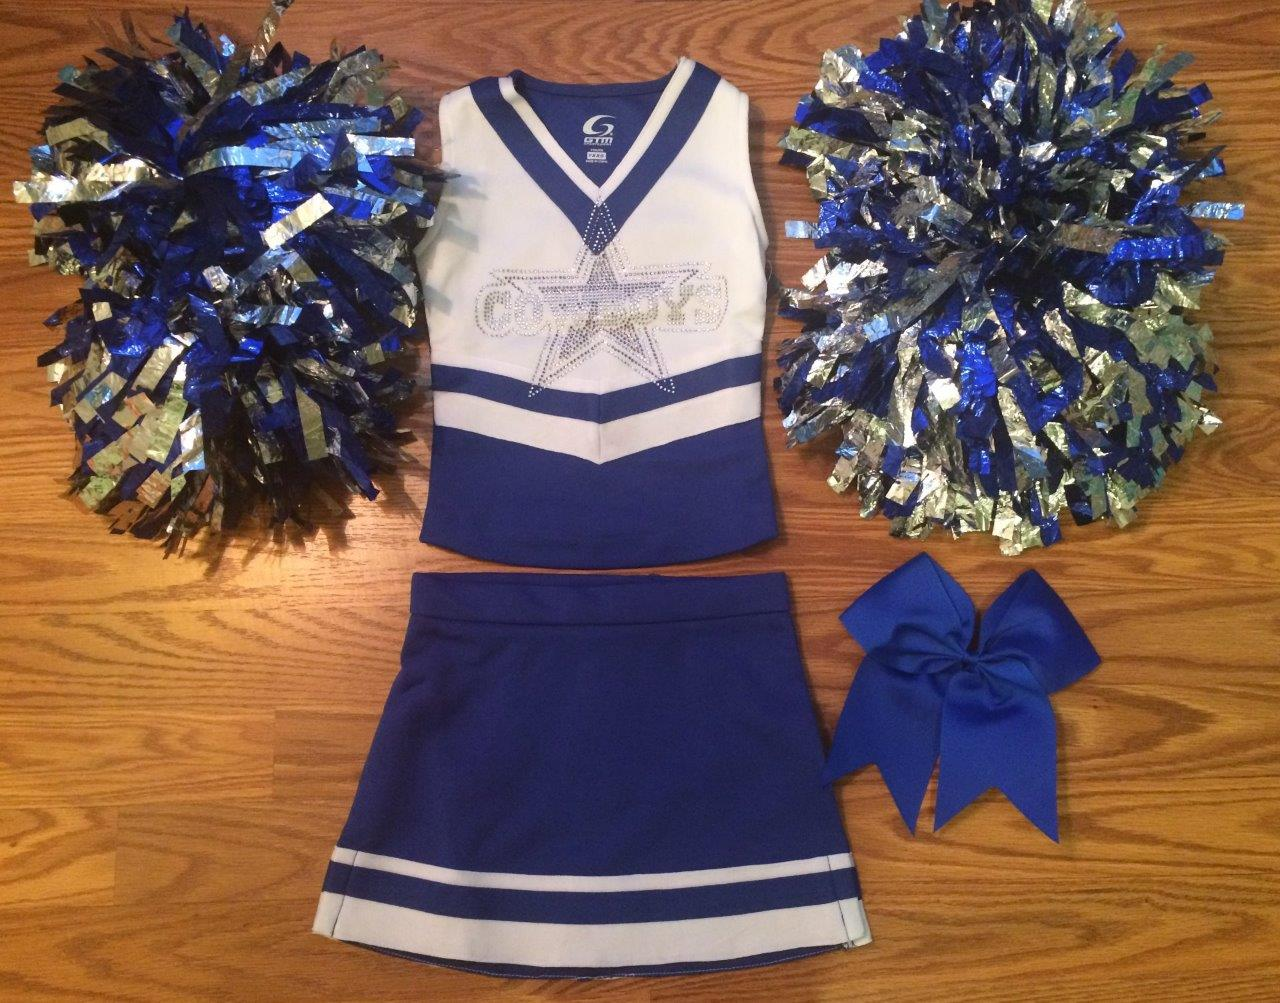 9c159c368 DALLAS COWBOYS CHEERLEADER COSTUME OUTFIT CHEER SET DELUXE POM POMS BOW 2-3T